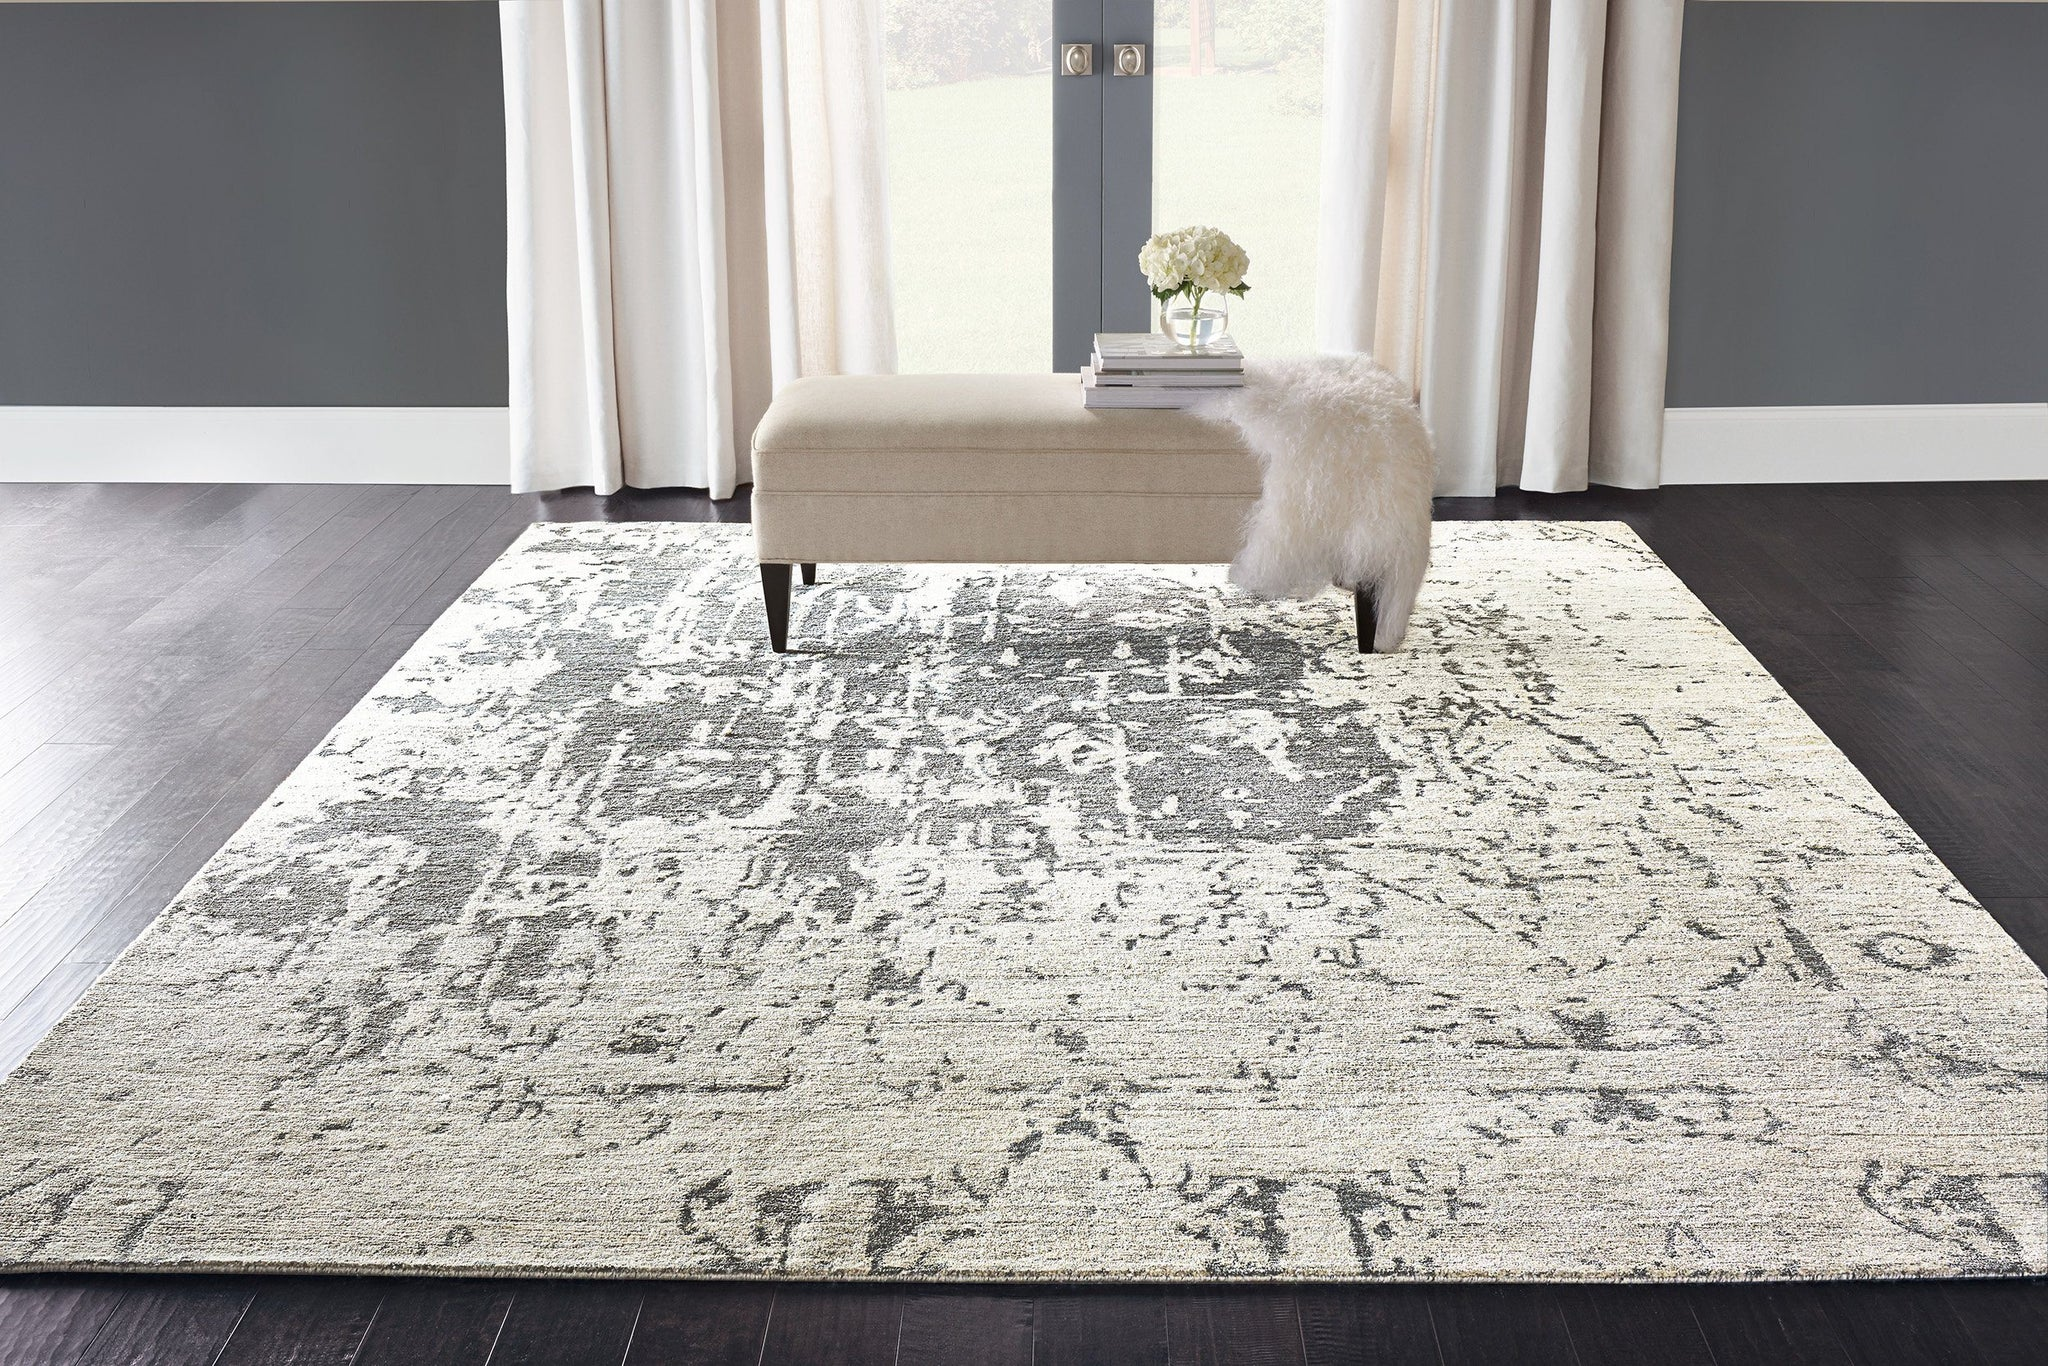 10 Affordable Rugs in Toronto